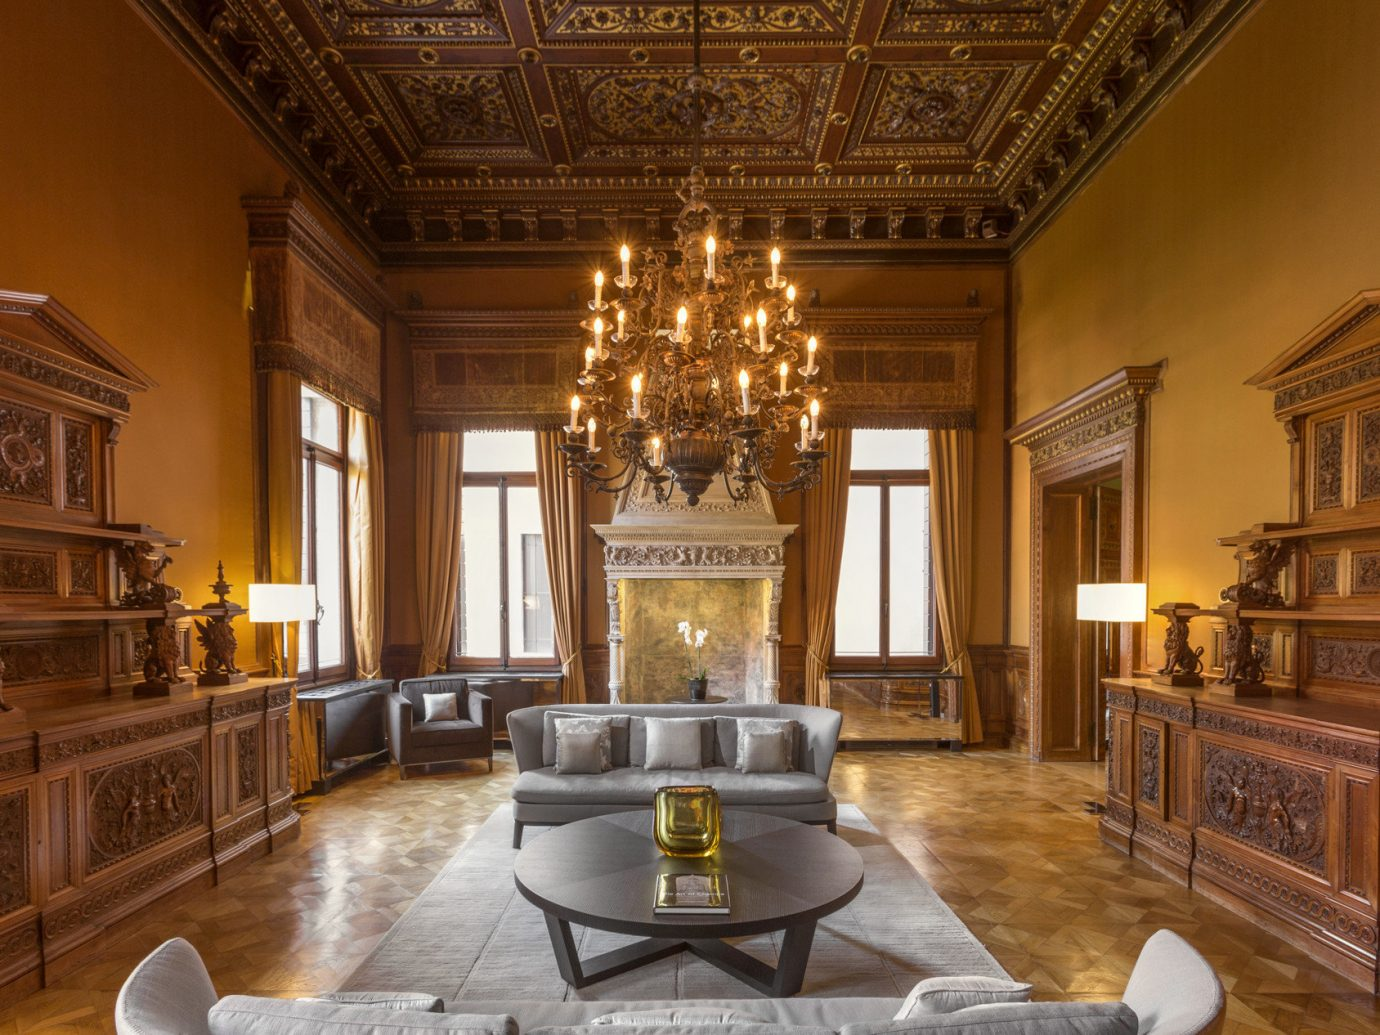 Hotels Italy Luxury Travel Venice indoor room Living property chair estate living room home mansion interior design floor hardwood furniture Dining dining room ceiling